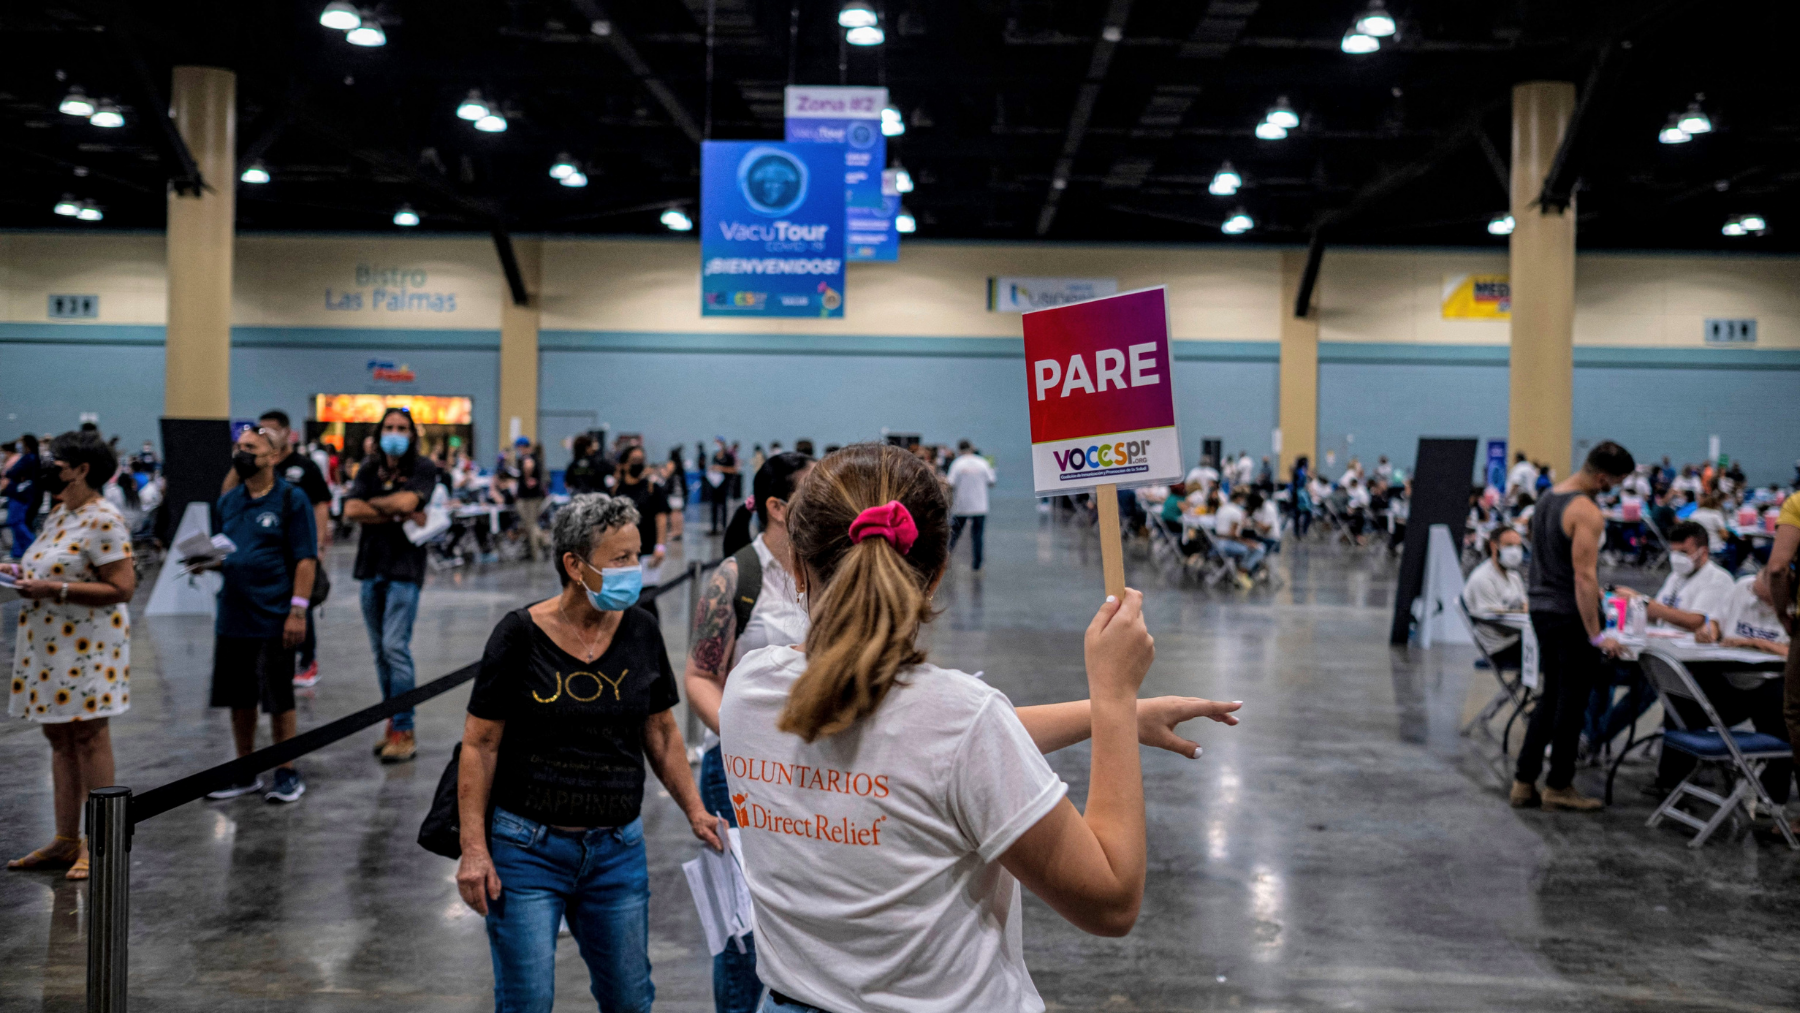 A Direct Relief volunteer assists people inside the Puerto Rico Convention Center during the first mass Covid-19 vaccination event in San Juan, Puerto Rico on March 31, 2021. (Photo by Ricardo ARDUENGO / AFP)